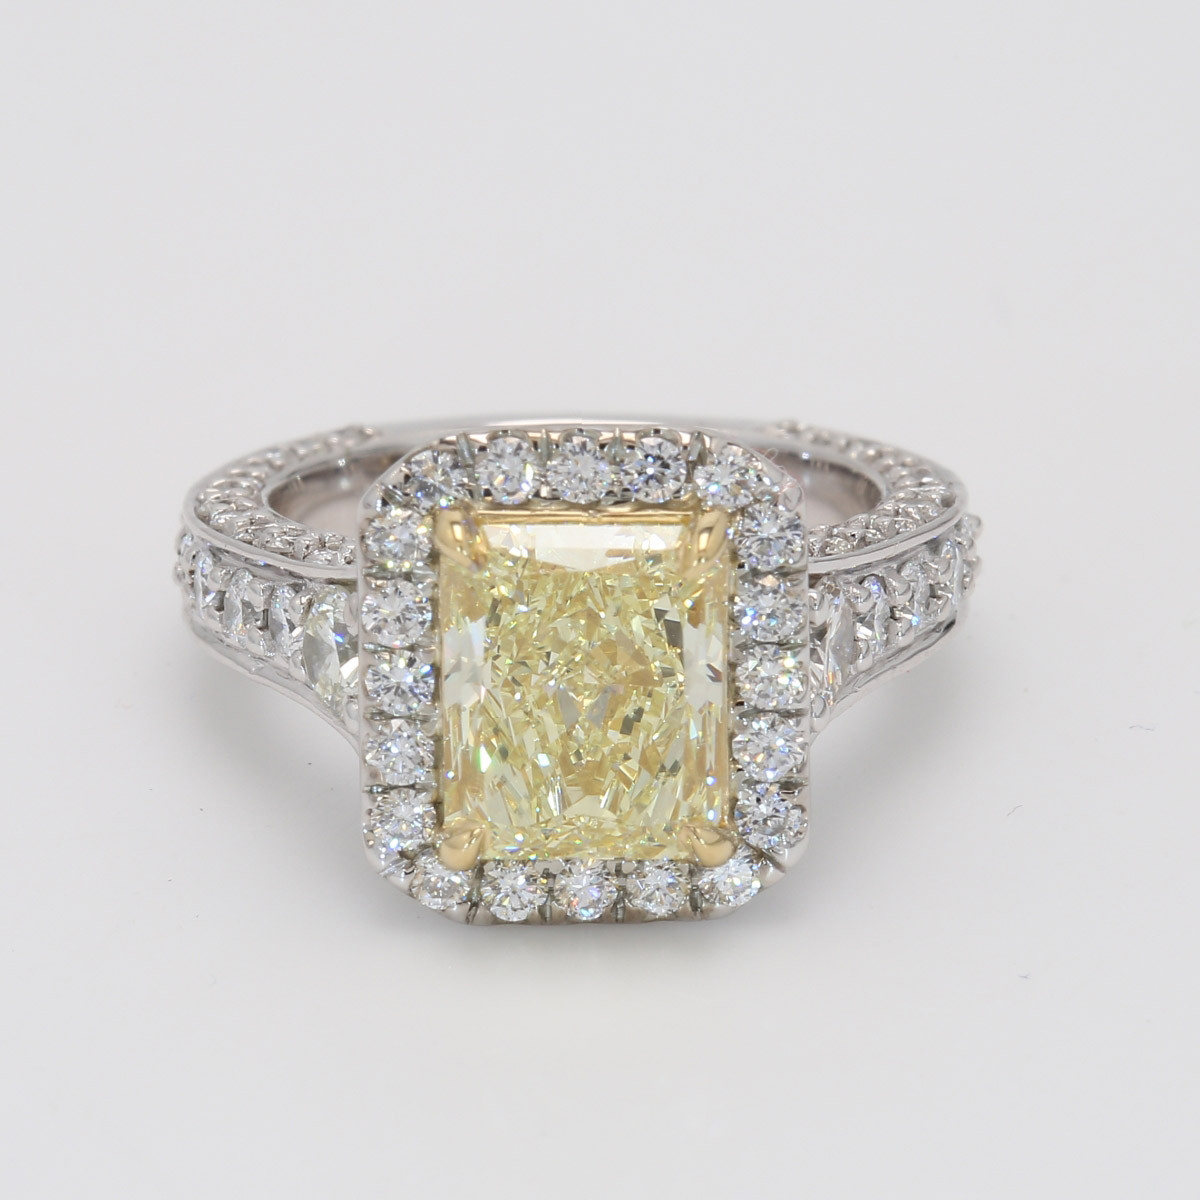 2.84CT Radiant Cut Yellow Diamond Engagement Ring Setting Halo .34CT 18K White Gold